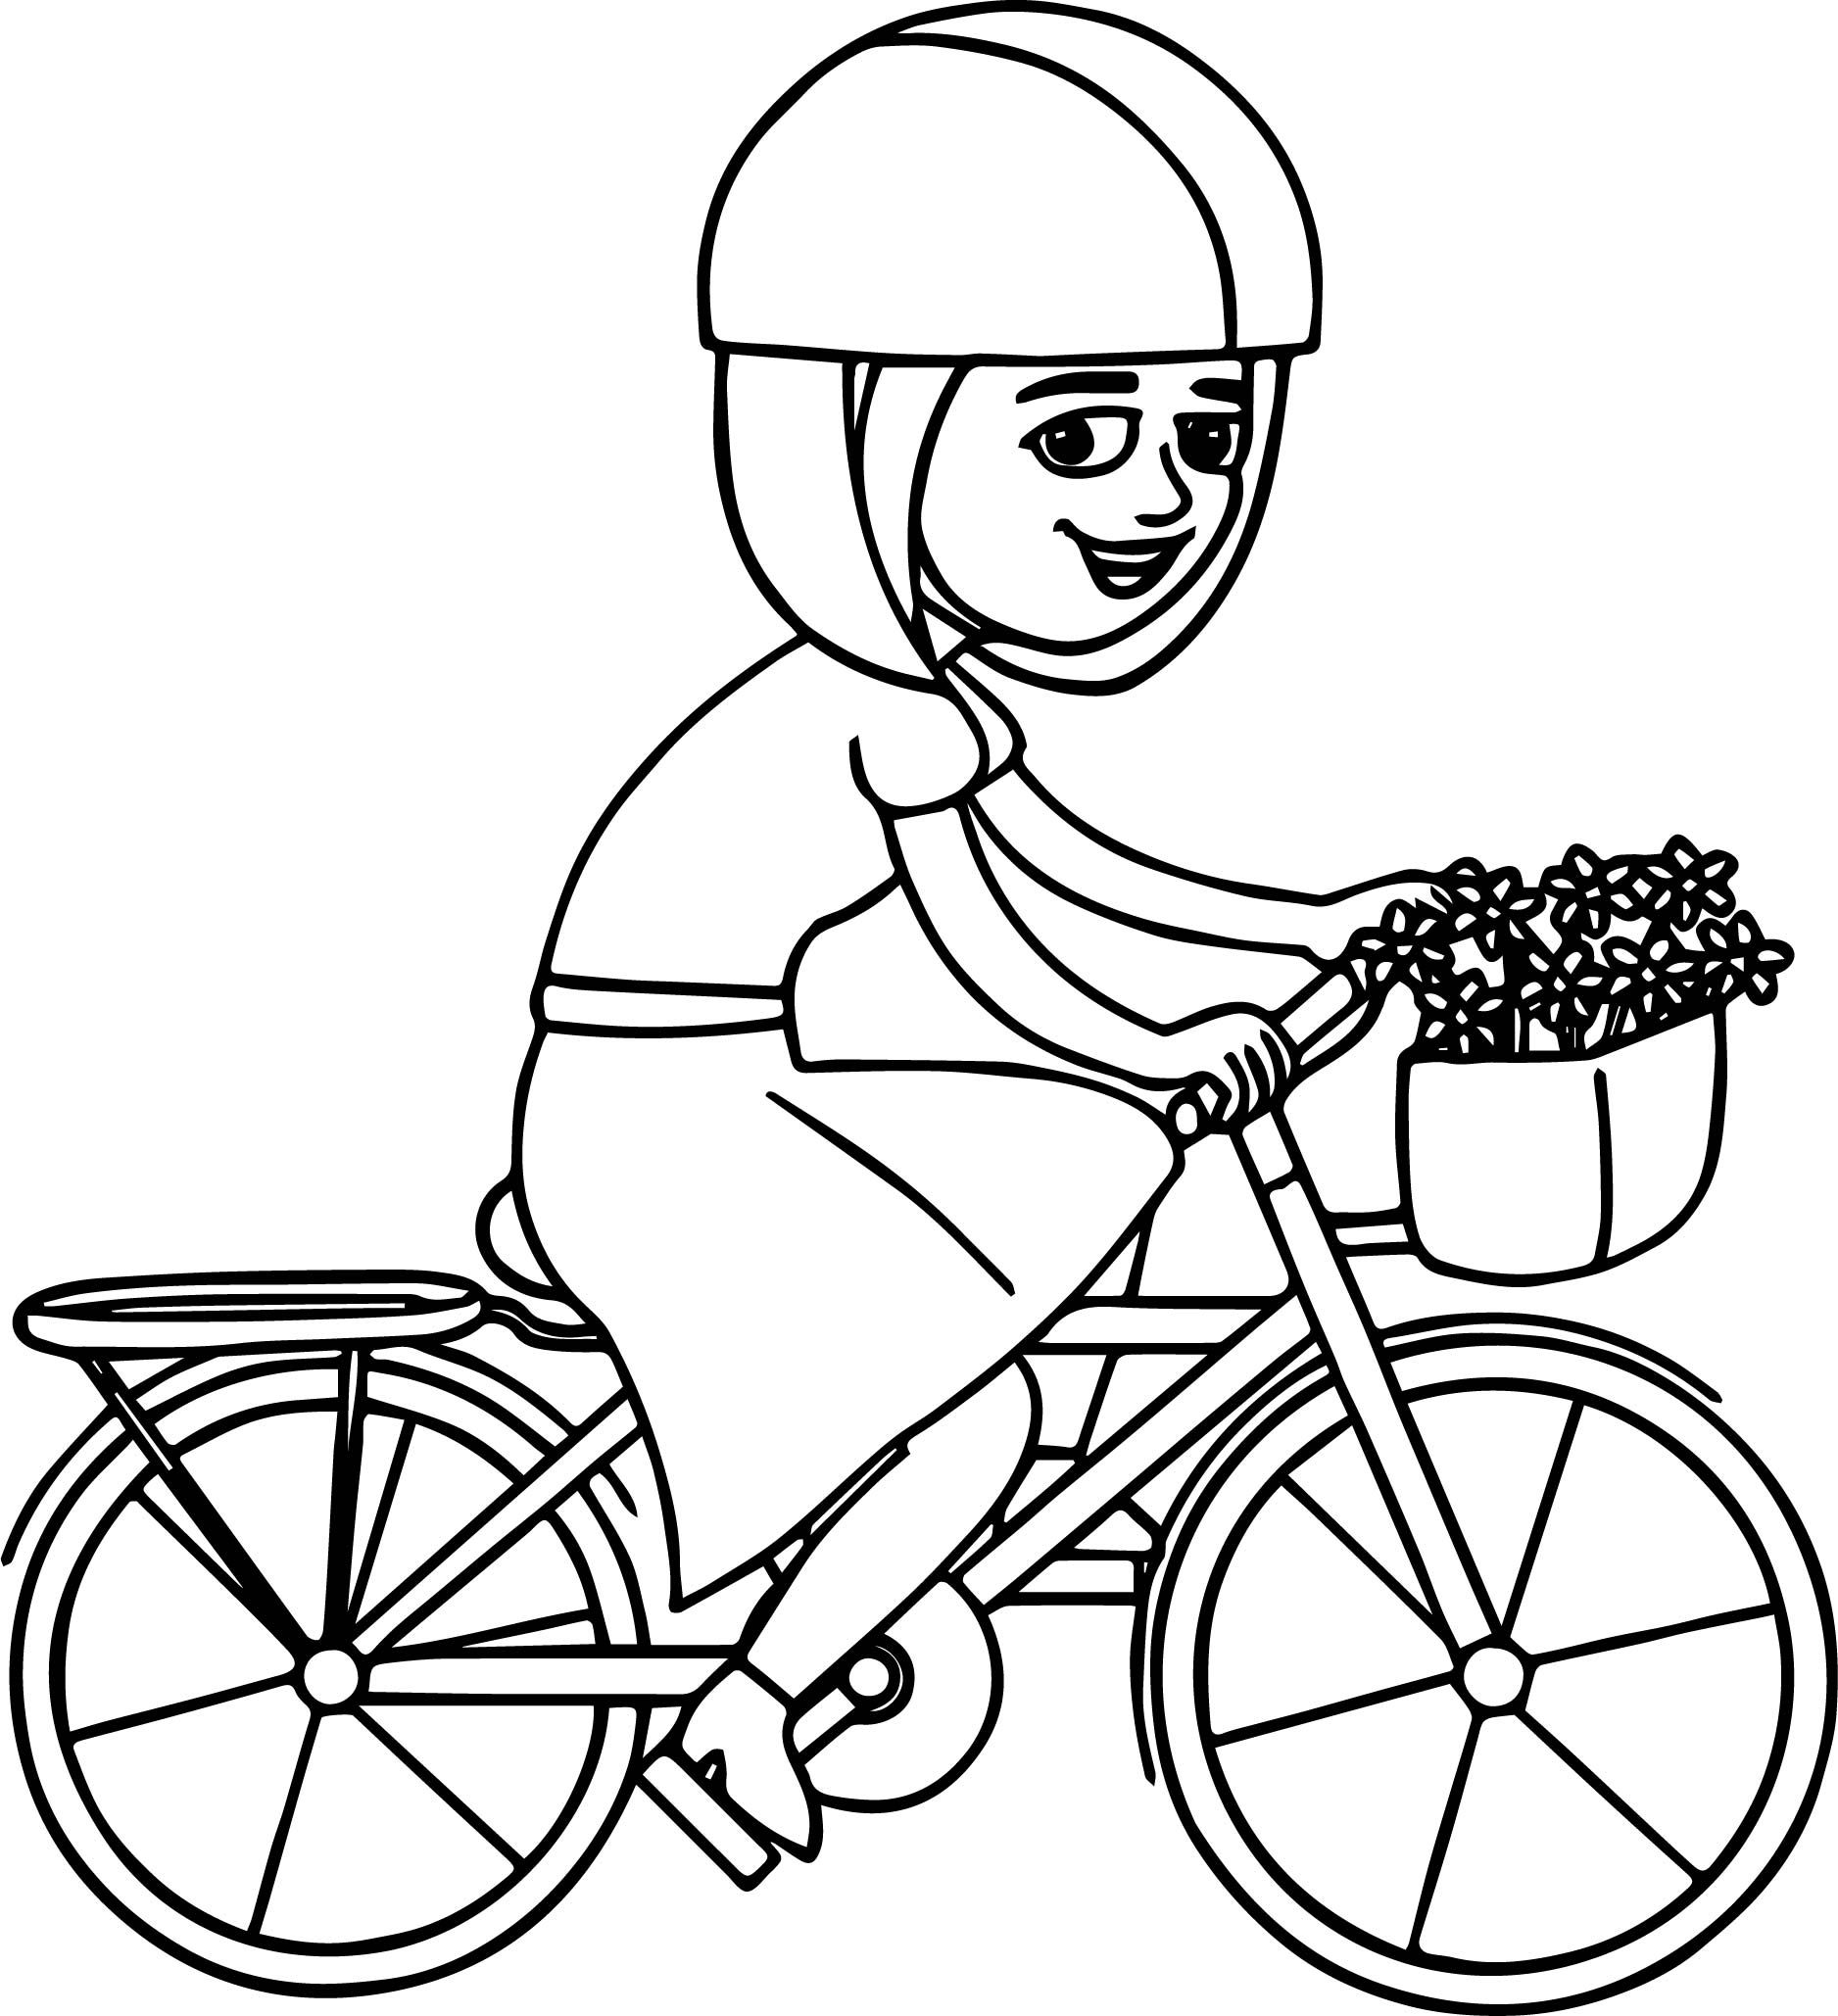 Full Length Kids Bike Coloring Page Download Free Full Length